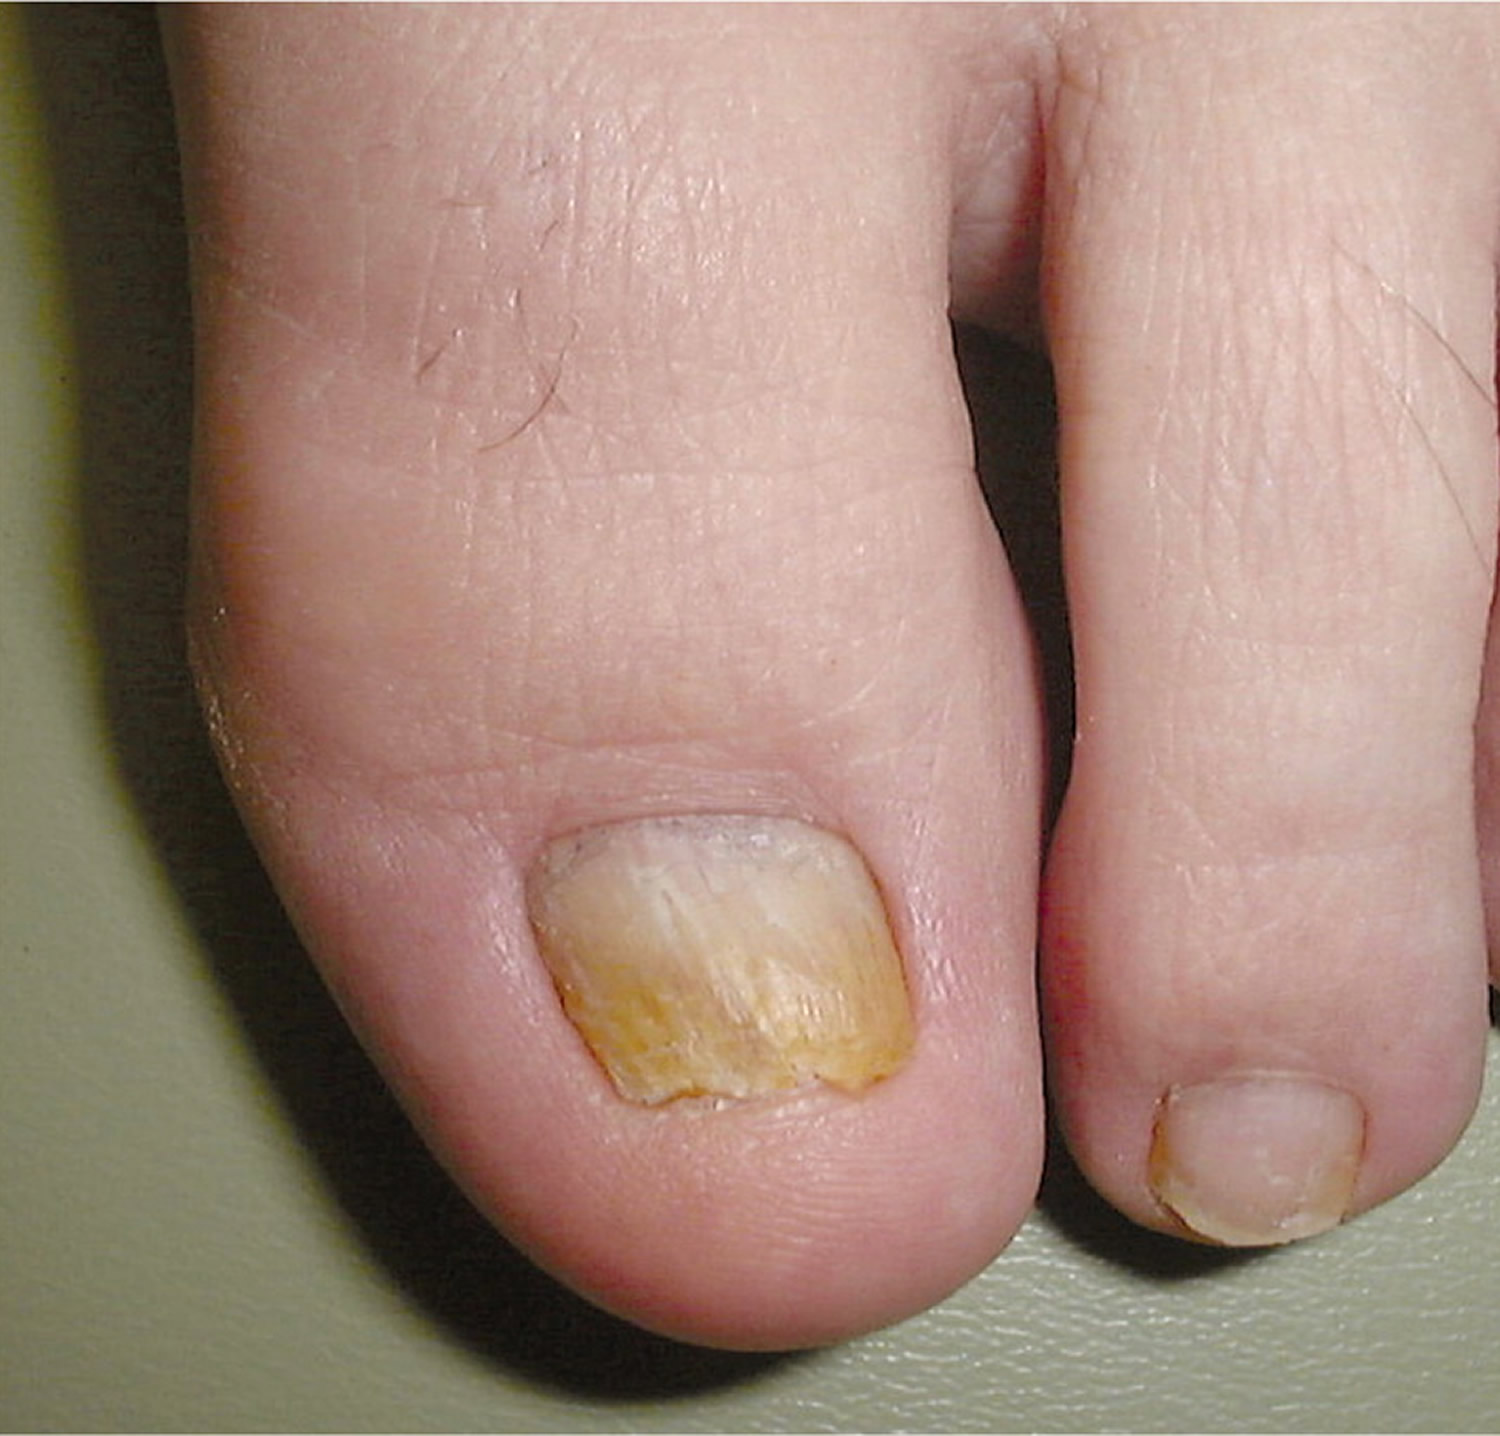 Distal and lateral subungual onychomycosis